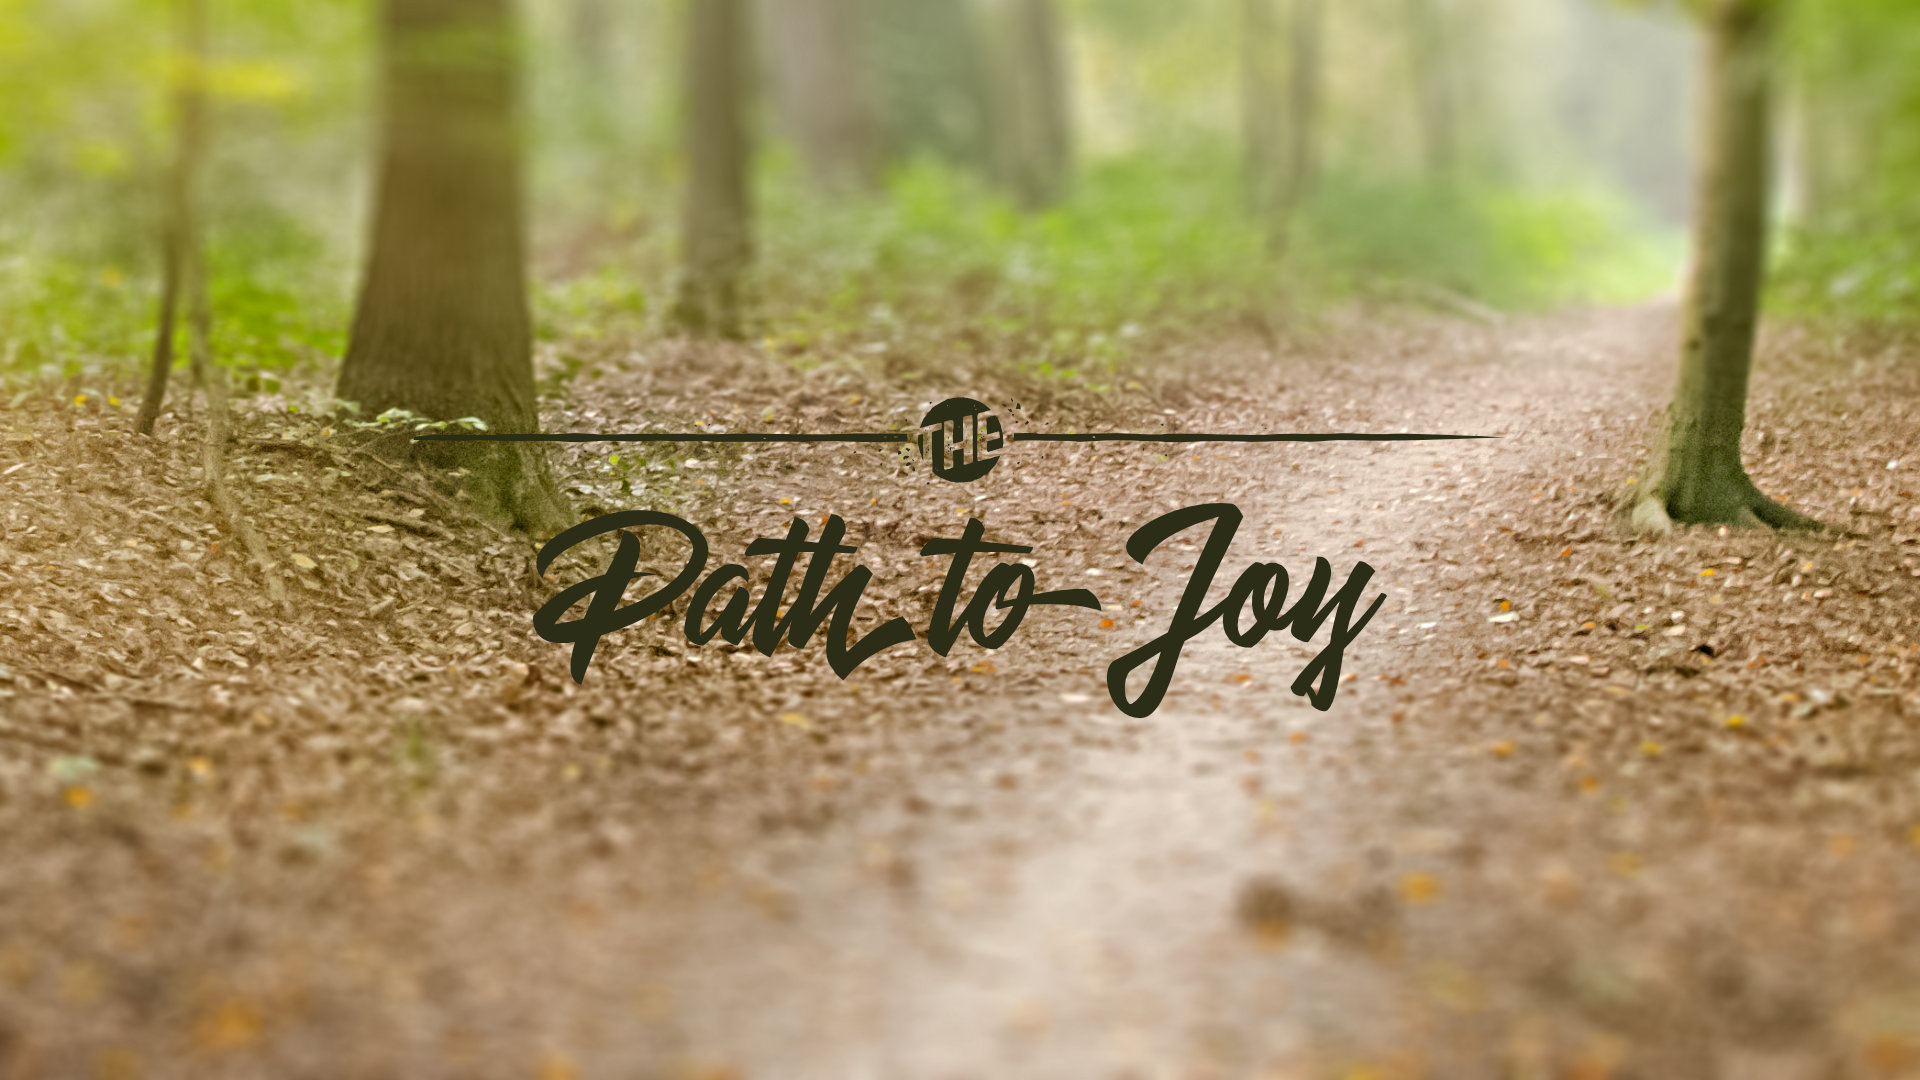 2019-07-14 The Path To Joy.jpg